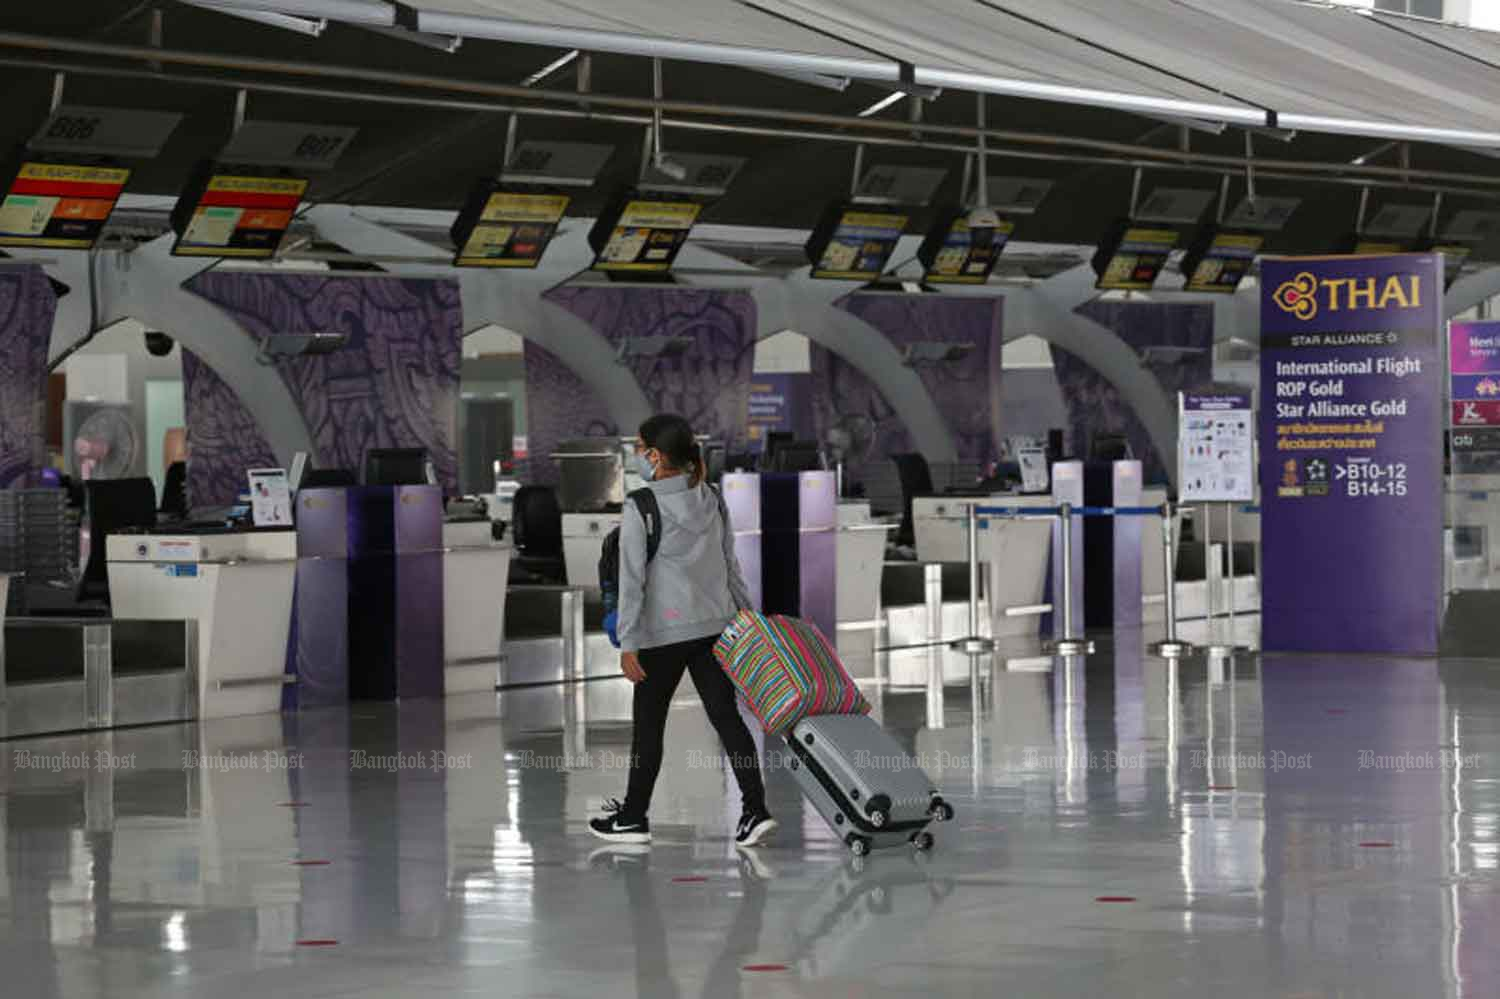 A traveller approaches the counter of Thai Airways International at Suvarnabhumi airport in Samut Prakan province last month. Finance Minister Uttama Savanayana said on Thursday the national airline needed a massive revamp, and filing for bankruptcy protection was one option. (Photo: Varuth Hirunyatheb)